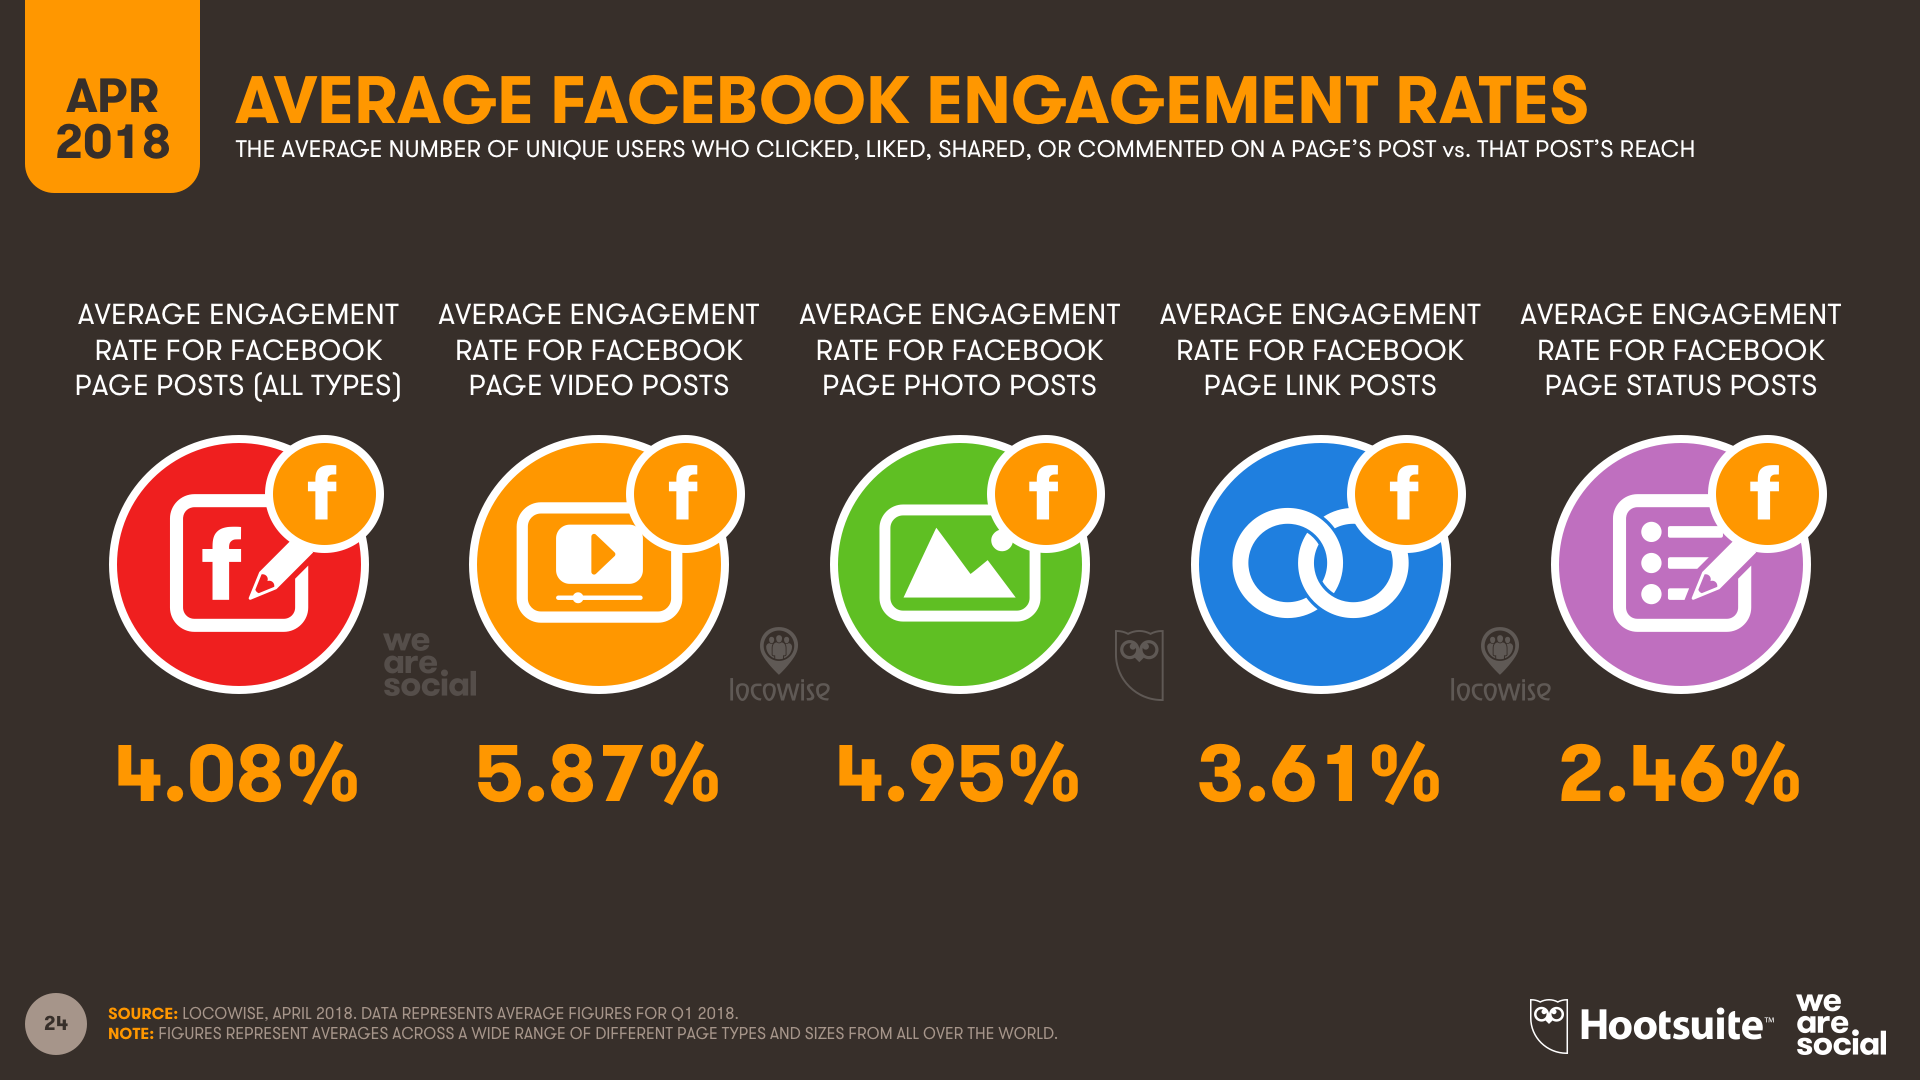 Facebook Engagement Rates - Q1 2018